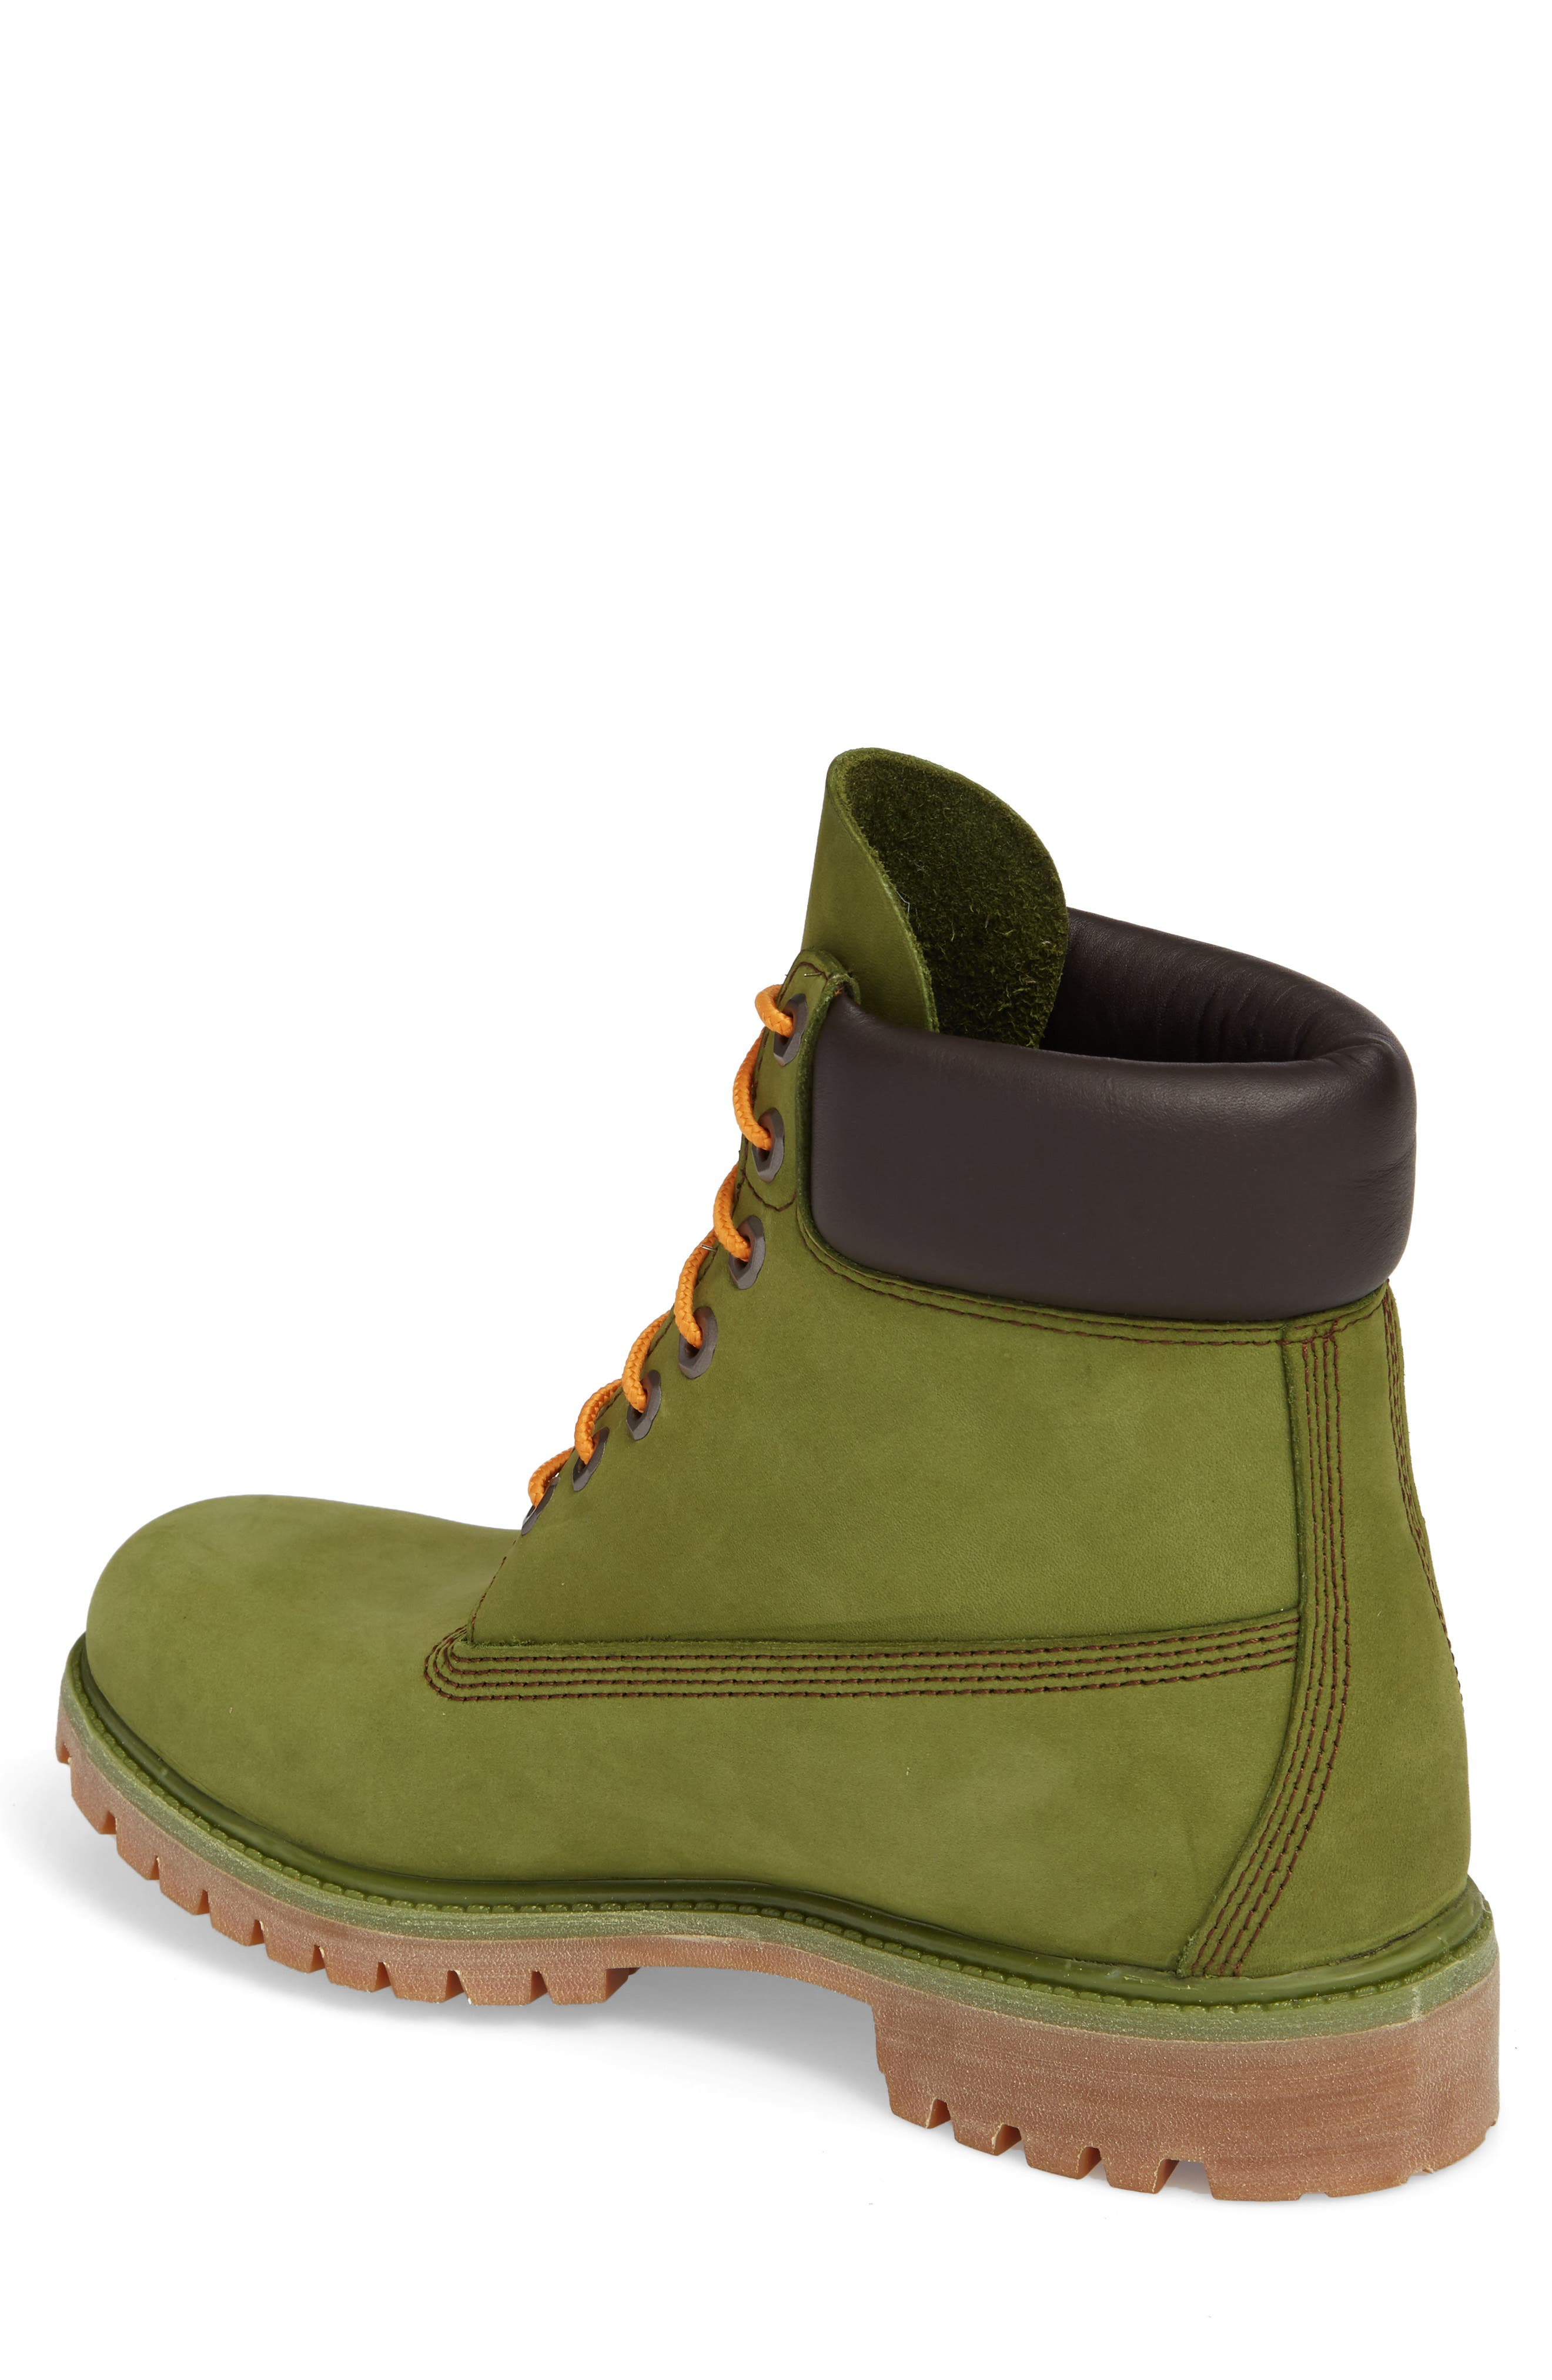 'Six Inch Classic Boots Series - Premium' Boot,                             Alternate thumbnail 2, color,                             Pesto Waterbuck